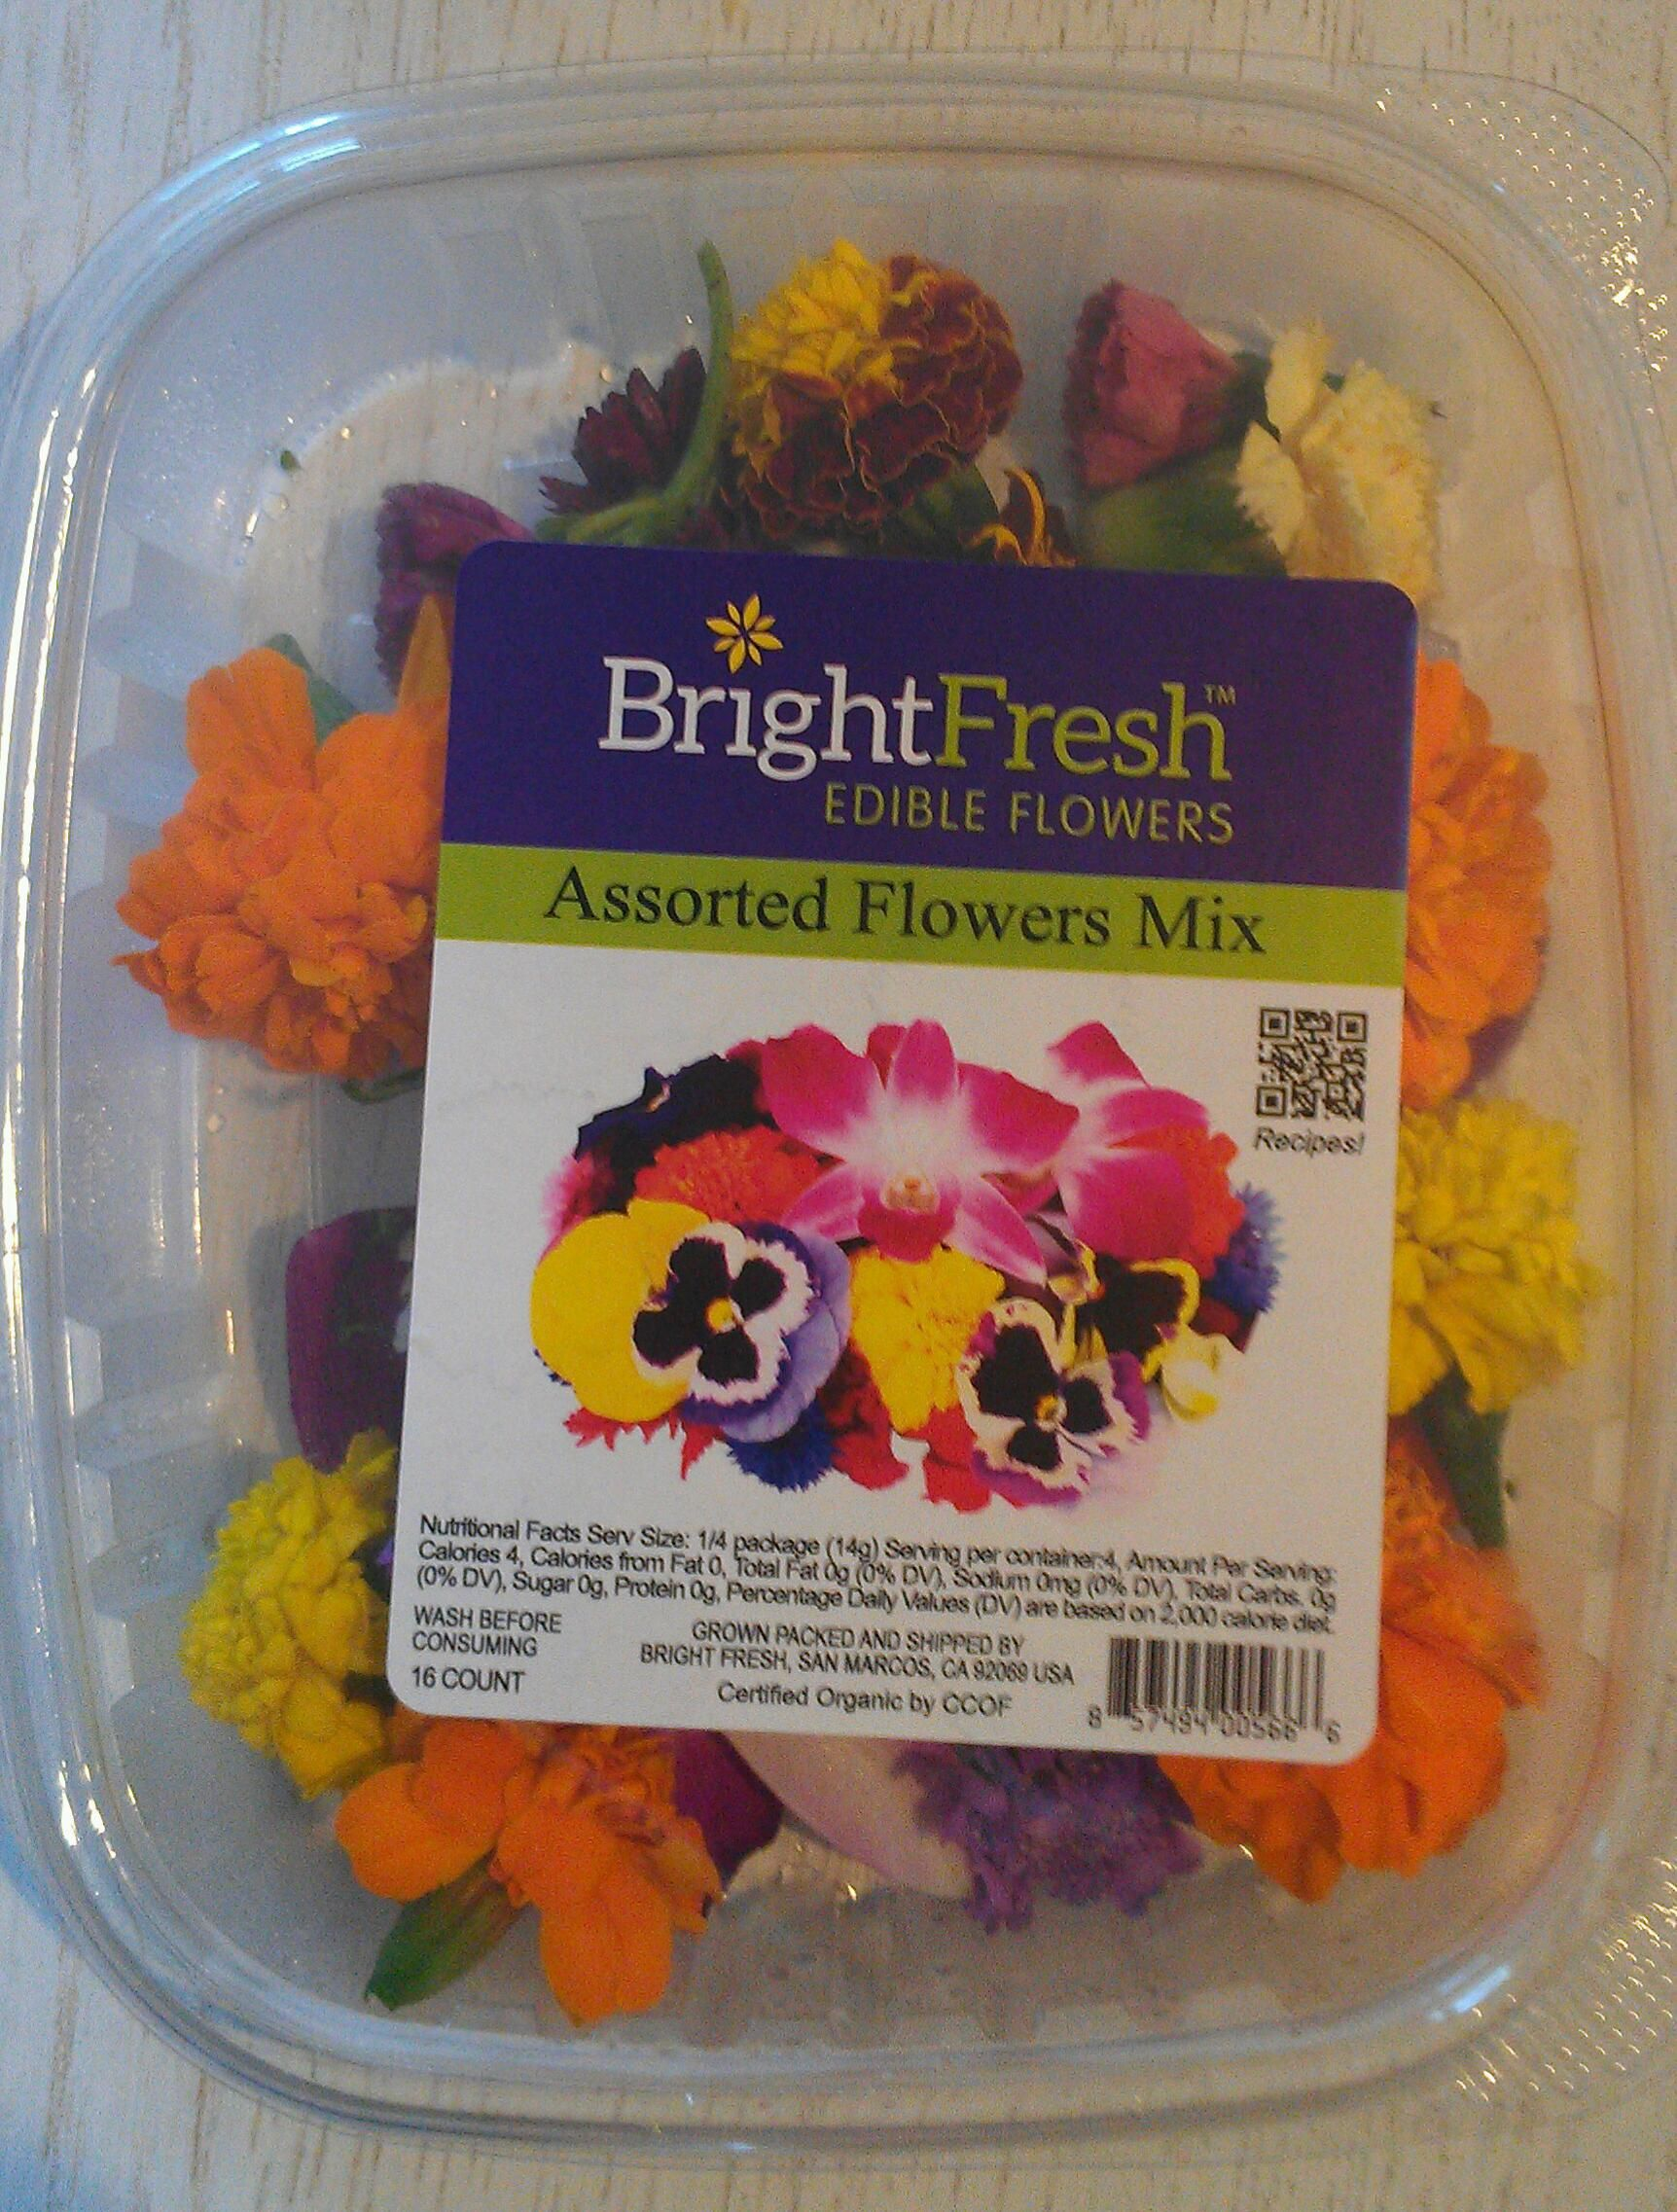 Packaged Edible Flowers May Soon Be in a Store Near You